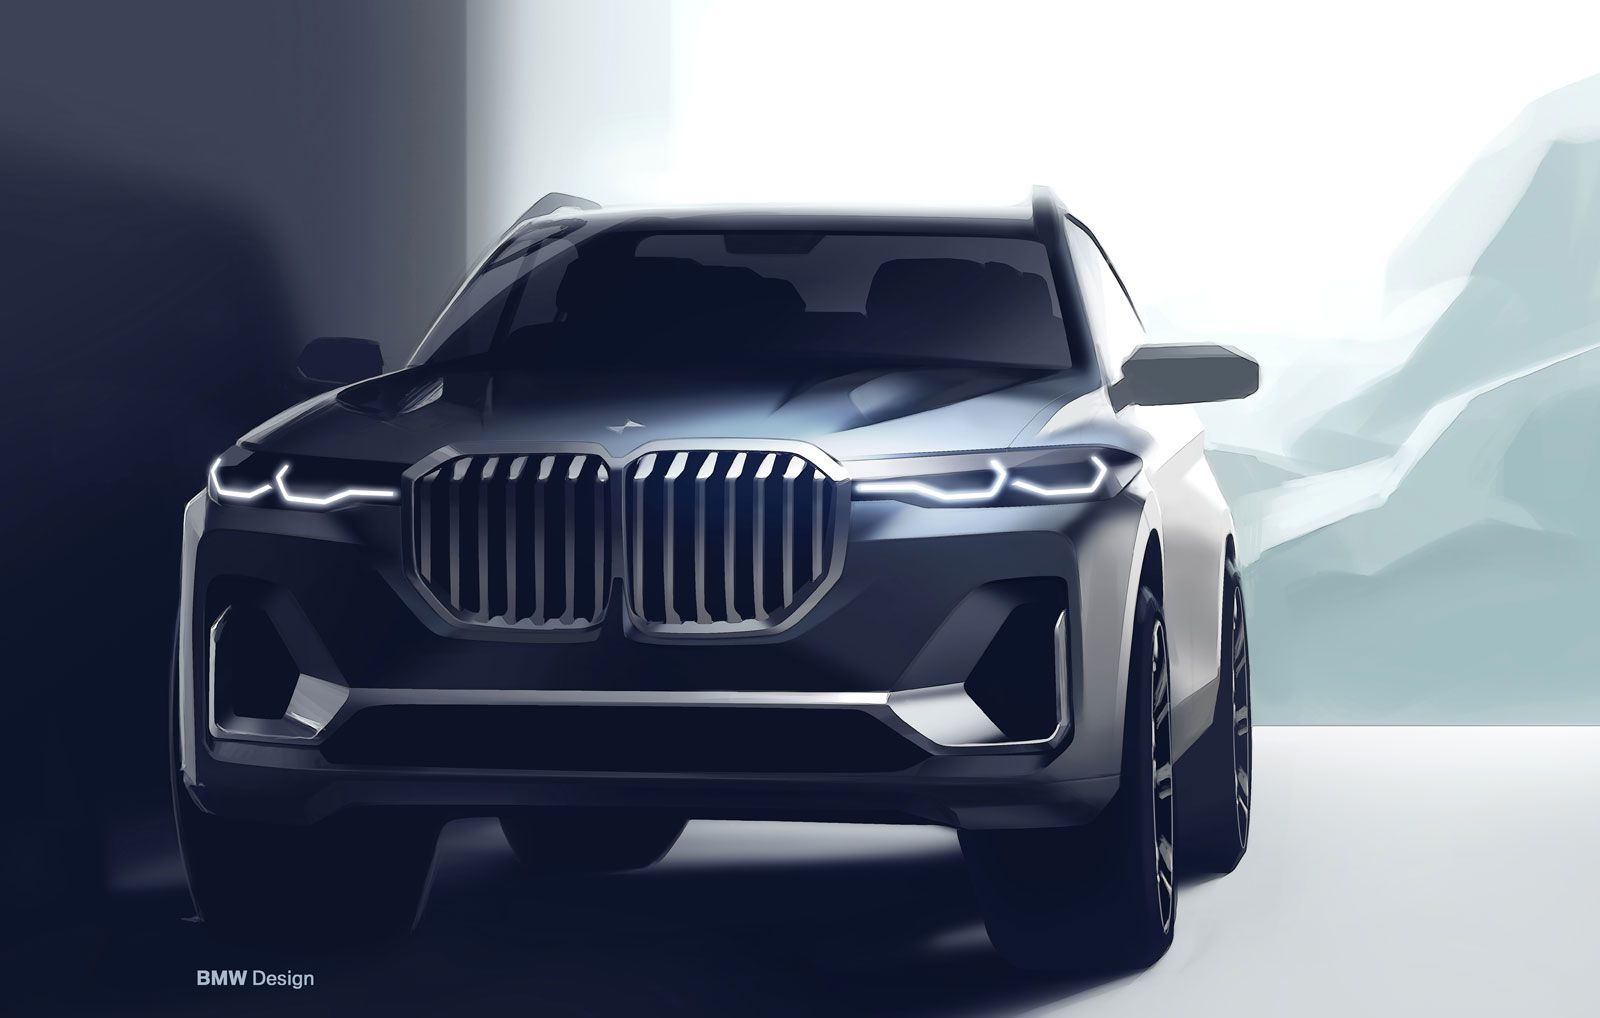 Bmw X7 Design Sketch Render Bmw X7 Bmw Sketch Car